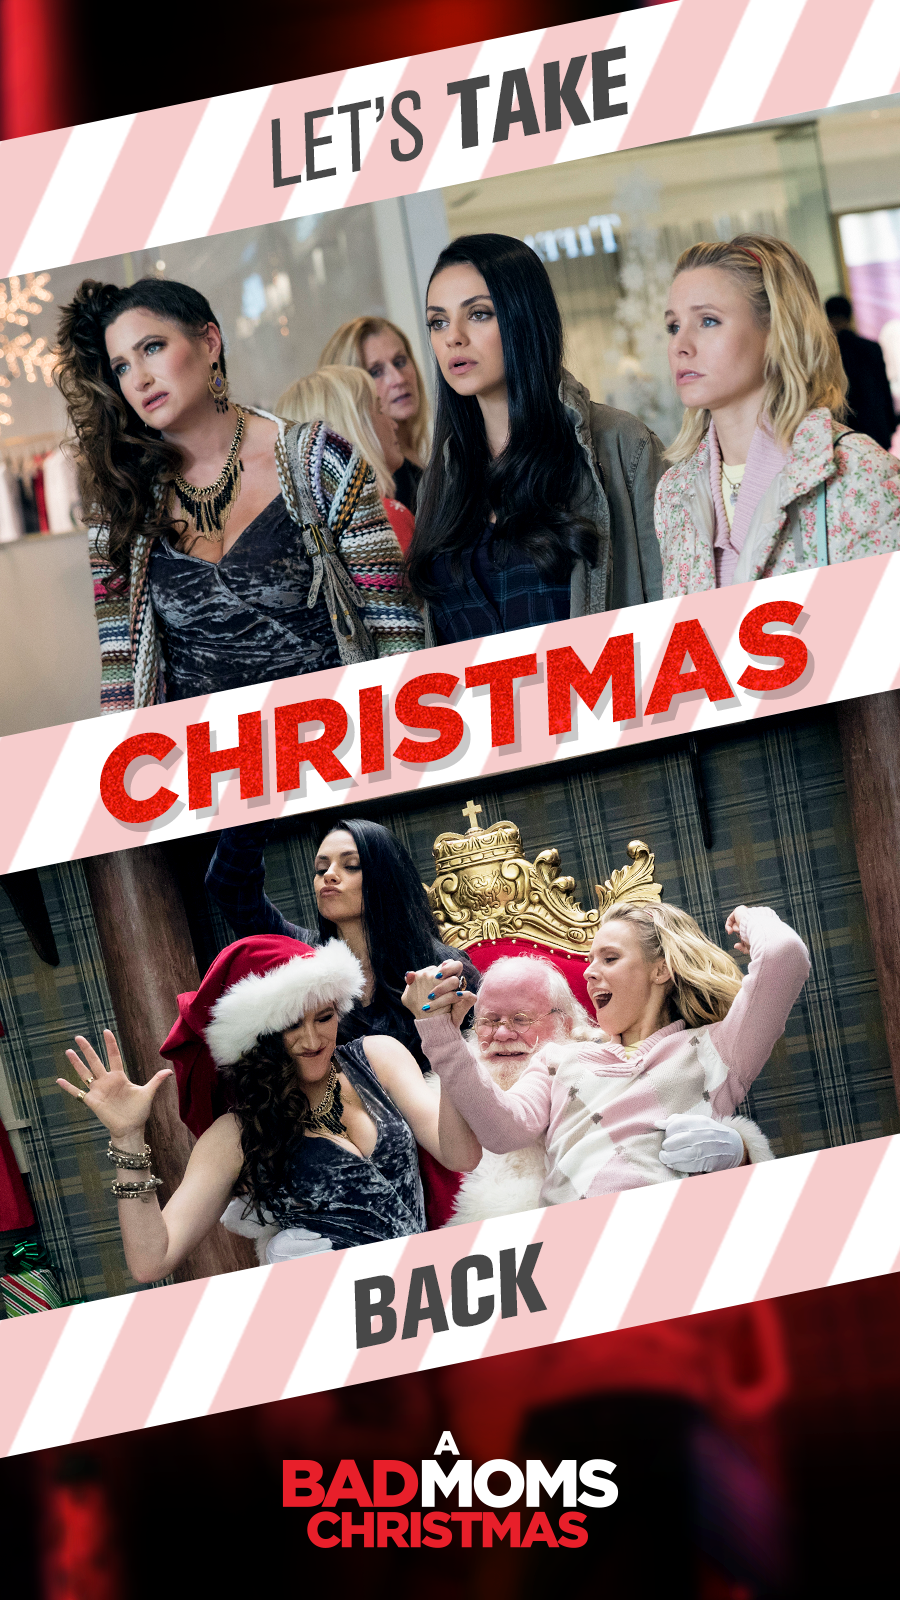 A Bad Moms Christmas Movie.These Bad Moms Are Ready To Take Back Christmas Are You